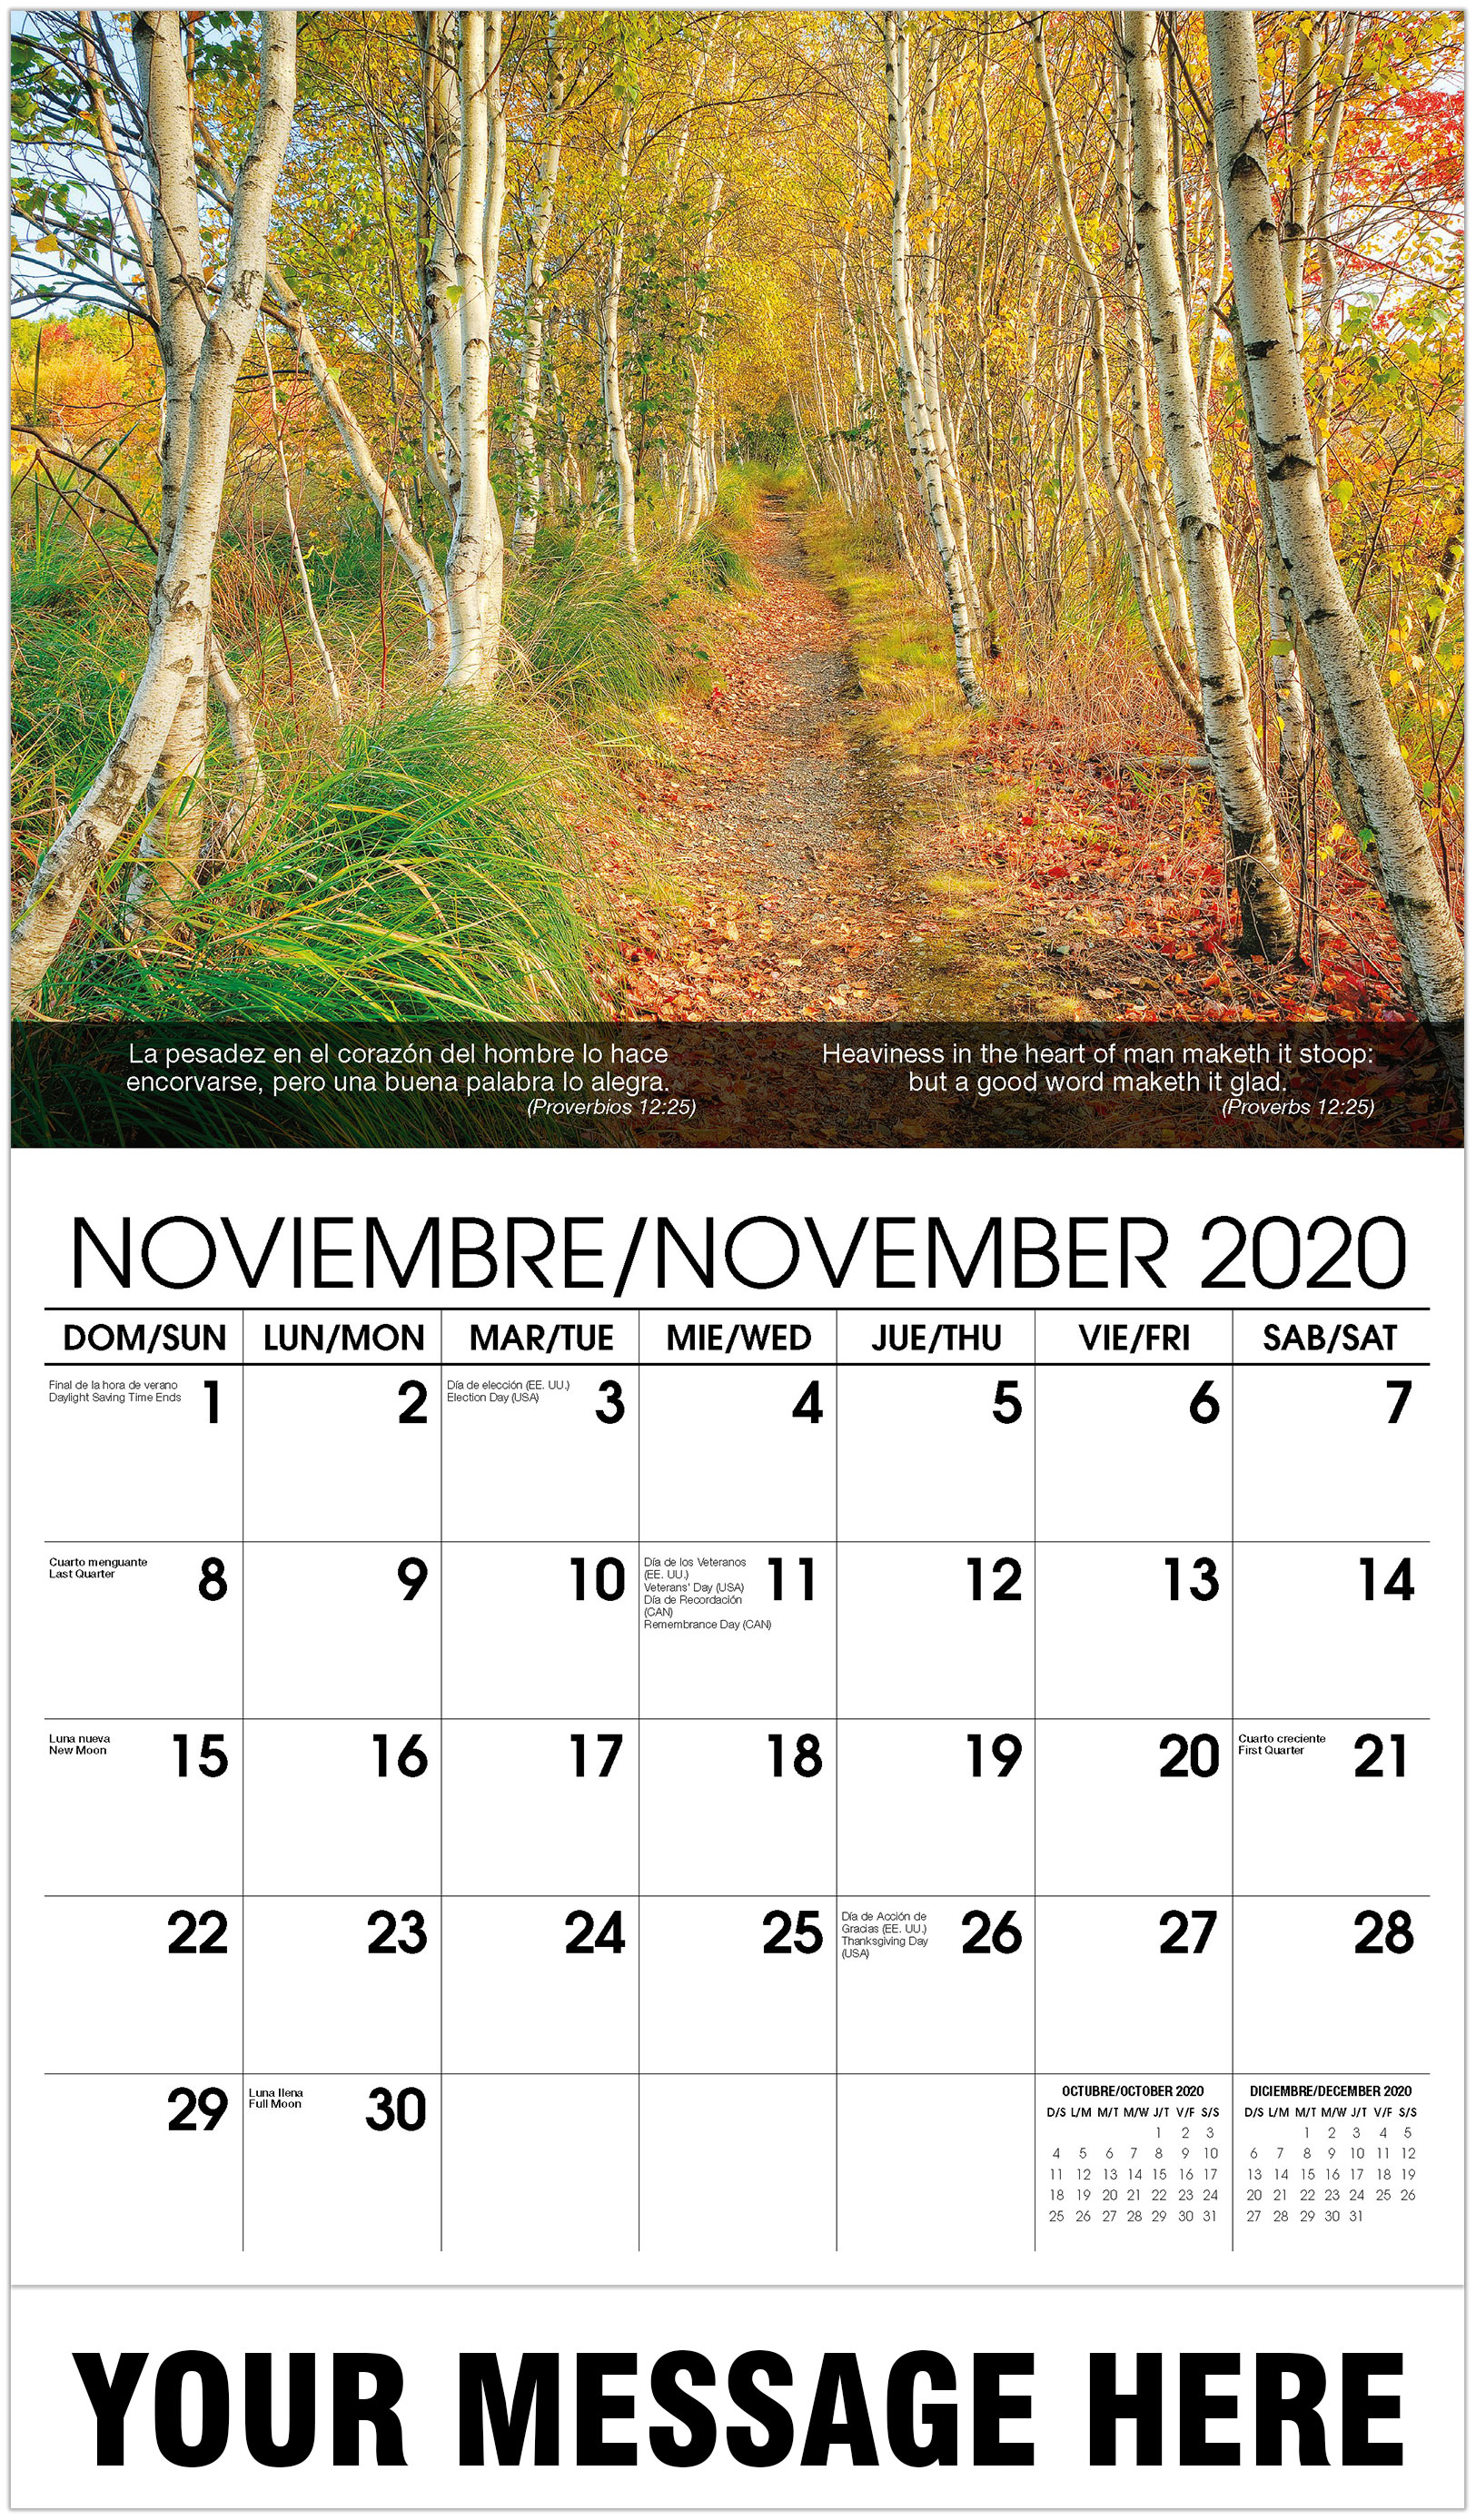 2020 Bilingual Advertising Calendar - Trees In Autumn - November